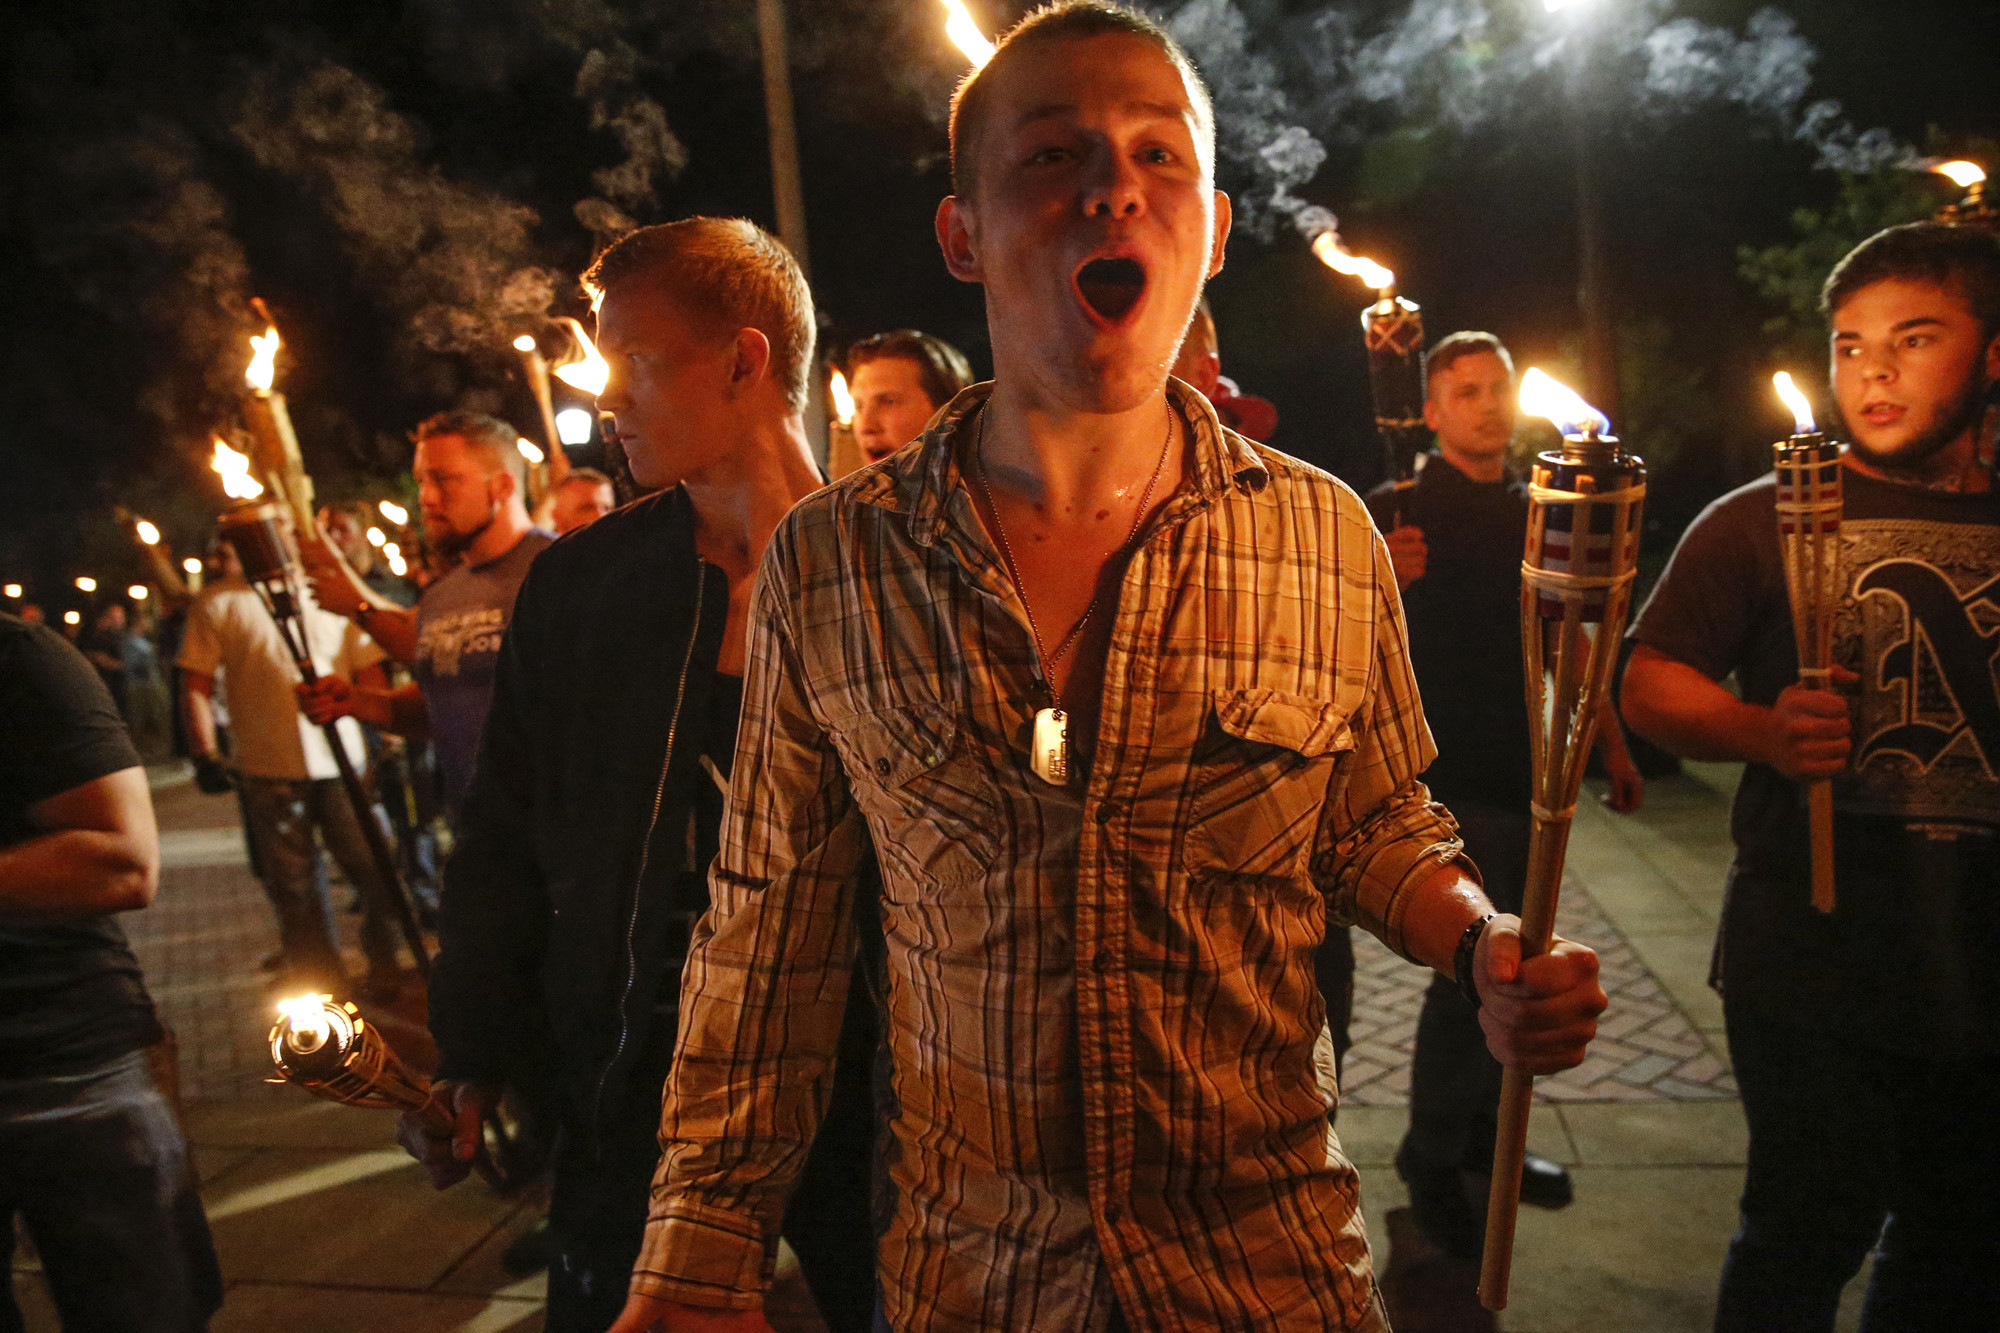 From Tiki torches to hockey, Charlottesville compels companies to denounce white supremacist patrons